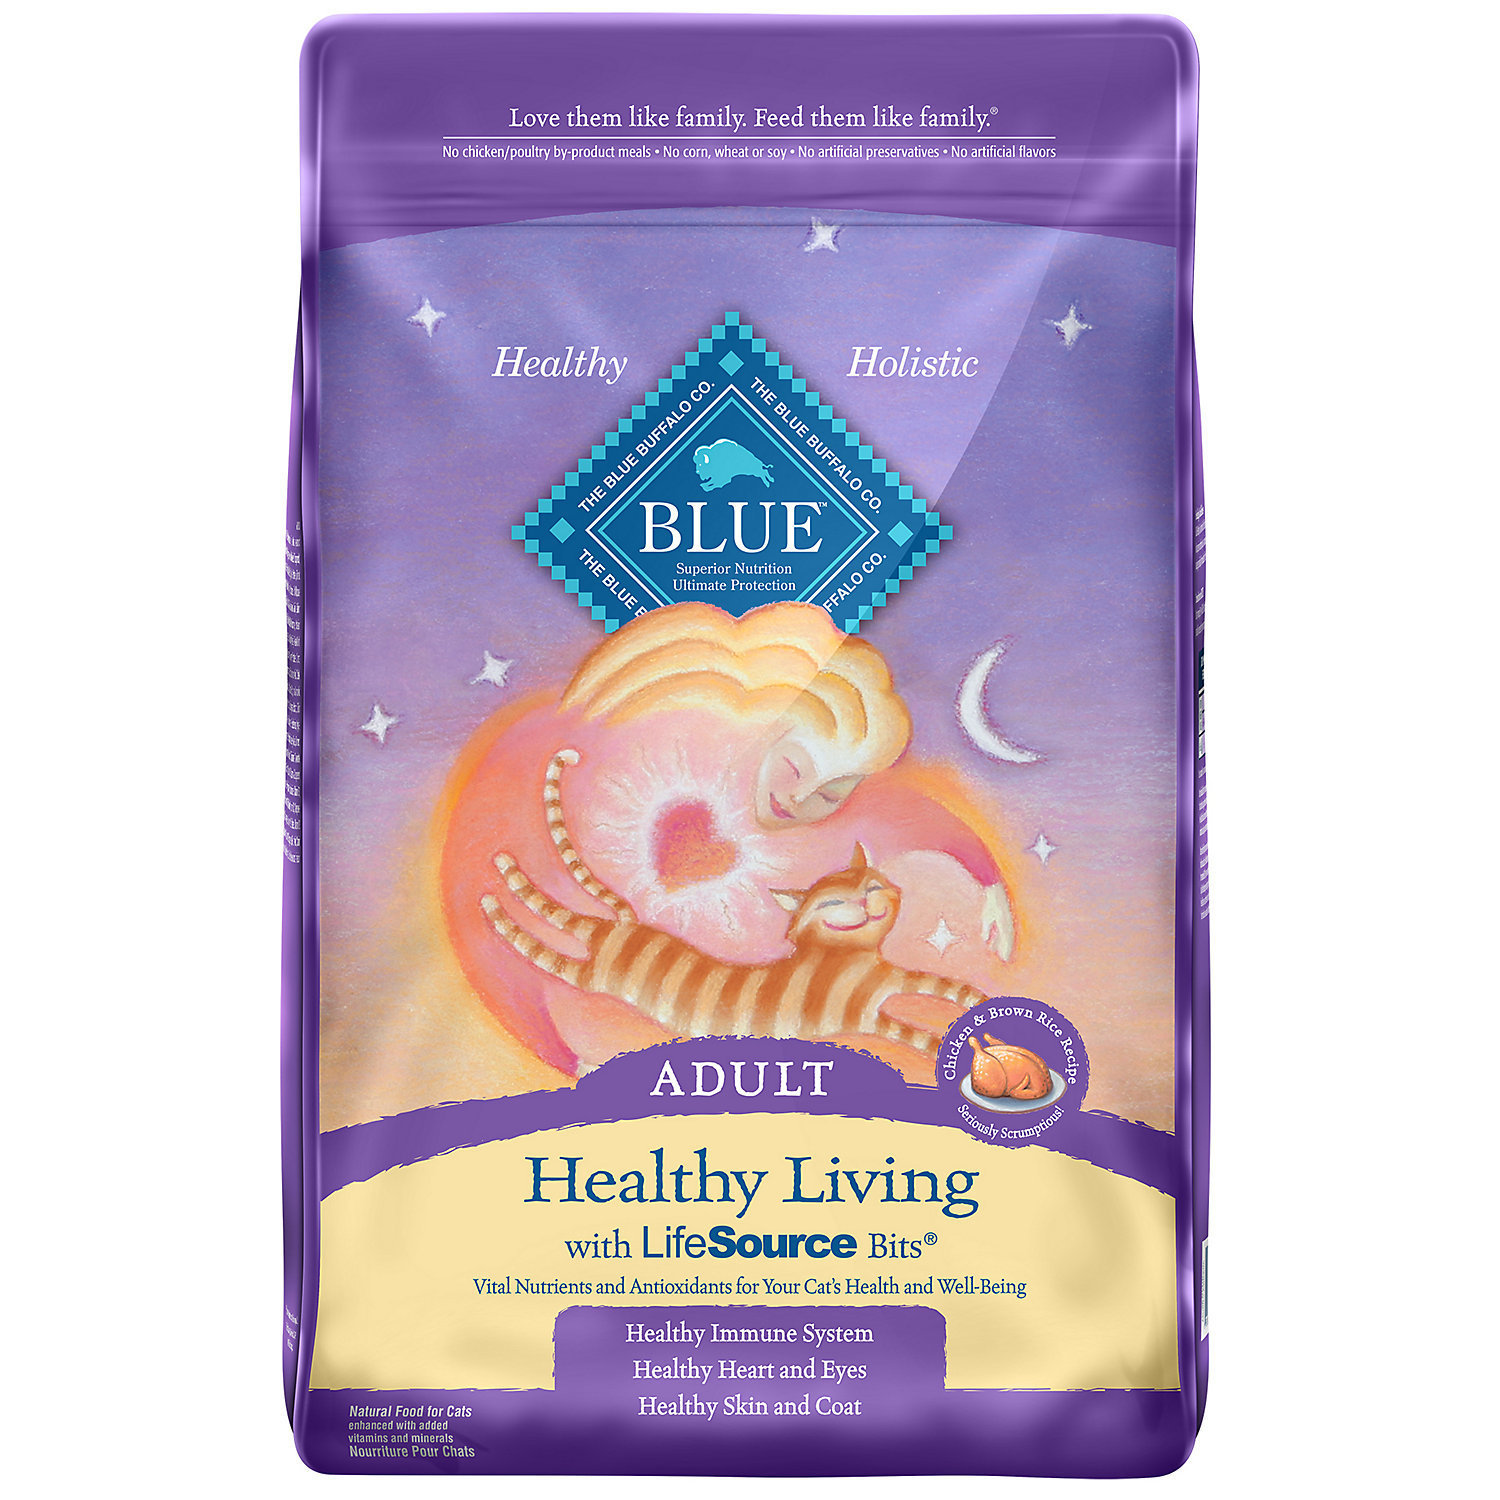 Blue Buffalo Healthy Living Chicken & Brown Rice Adult Cat Food, 3 lbs. (10/18) (A.P2)